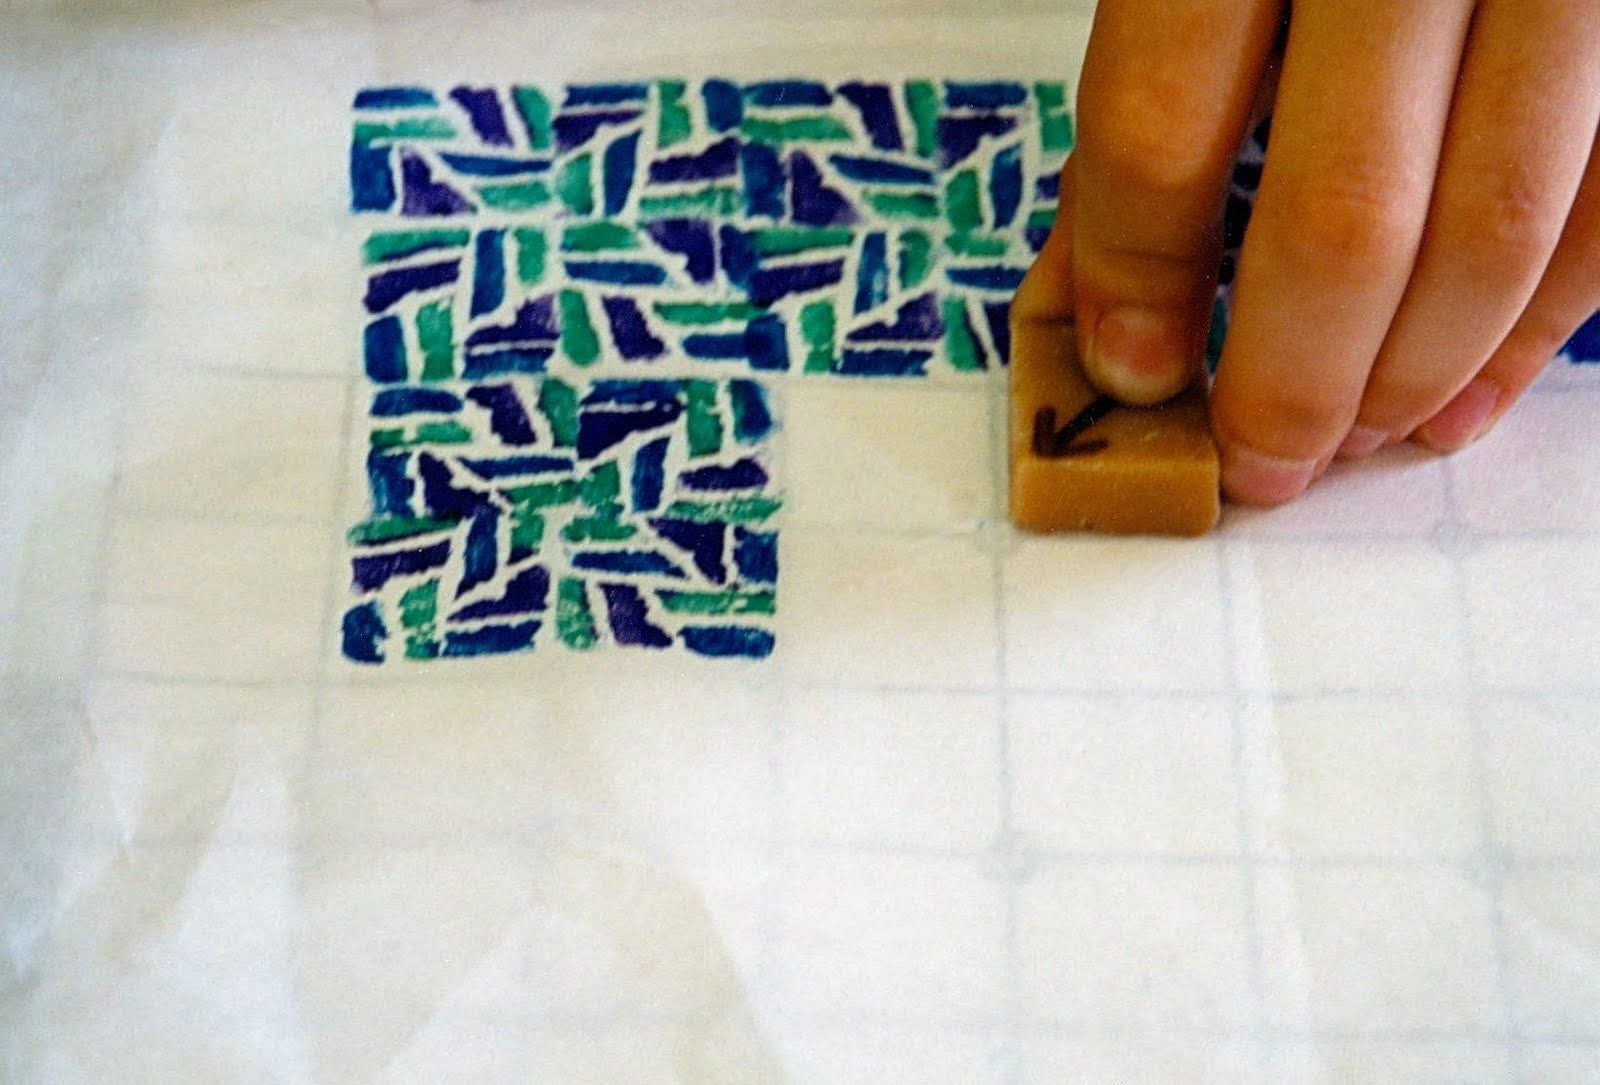 Use Erasers And Watercolor Markers To Make Relief Prints With Surprising Results For Ages 9 To